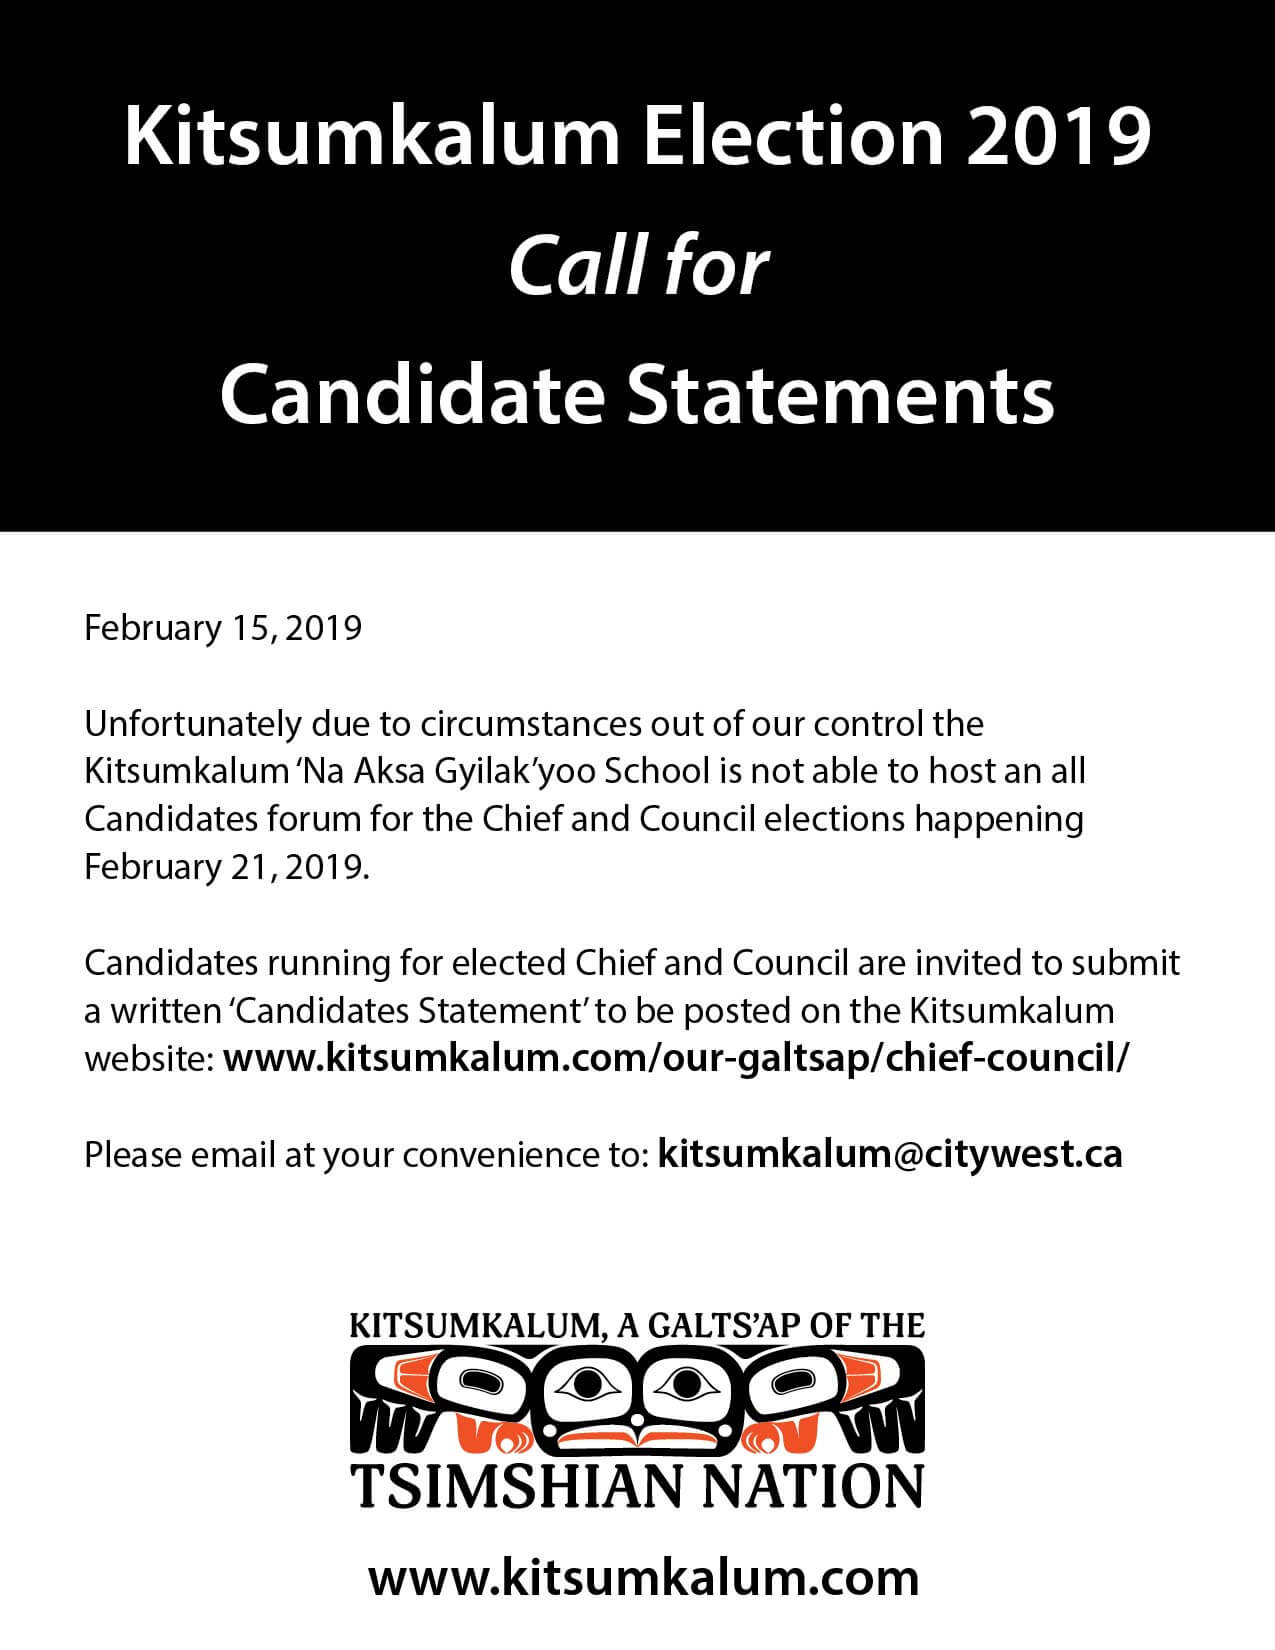 Kitsumkalum Election 2019 – Call for Candidate Statements